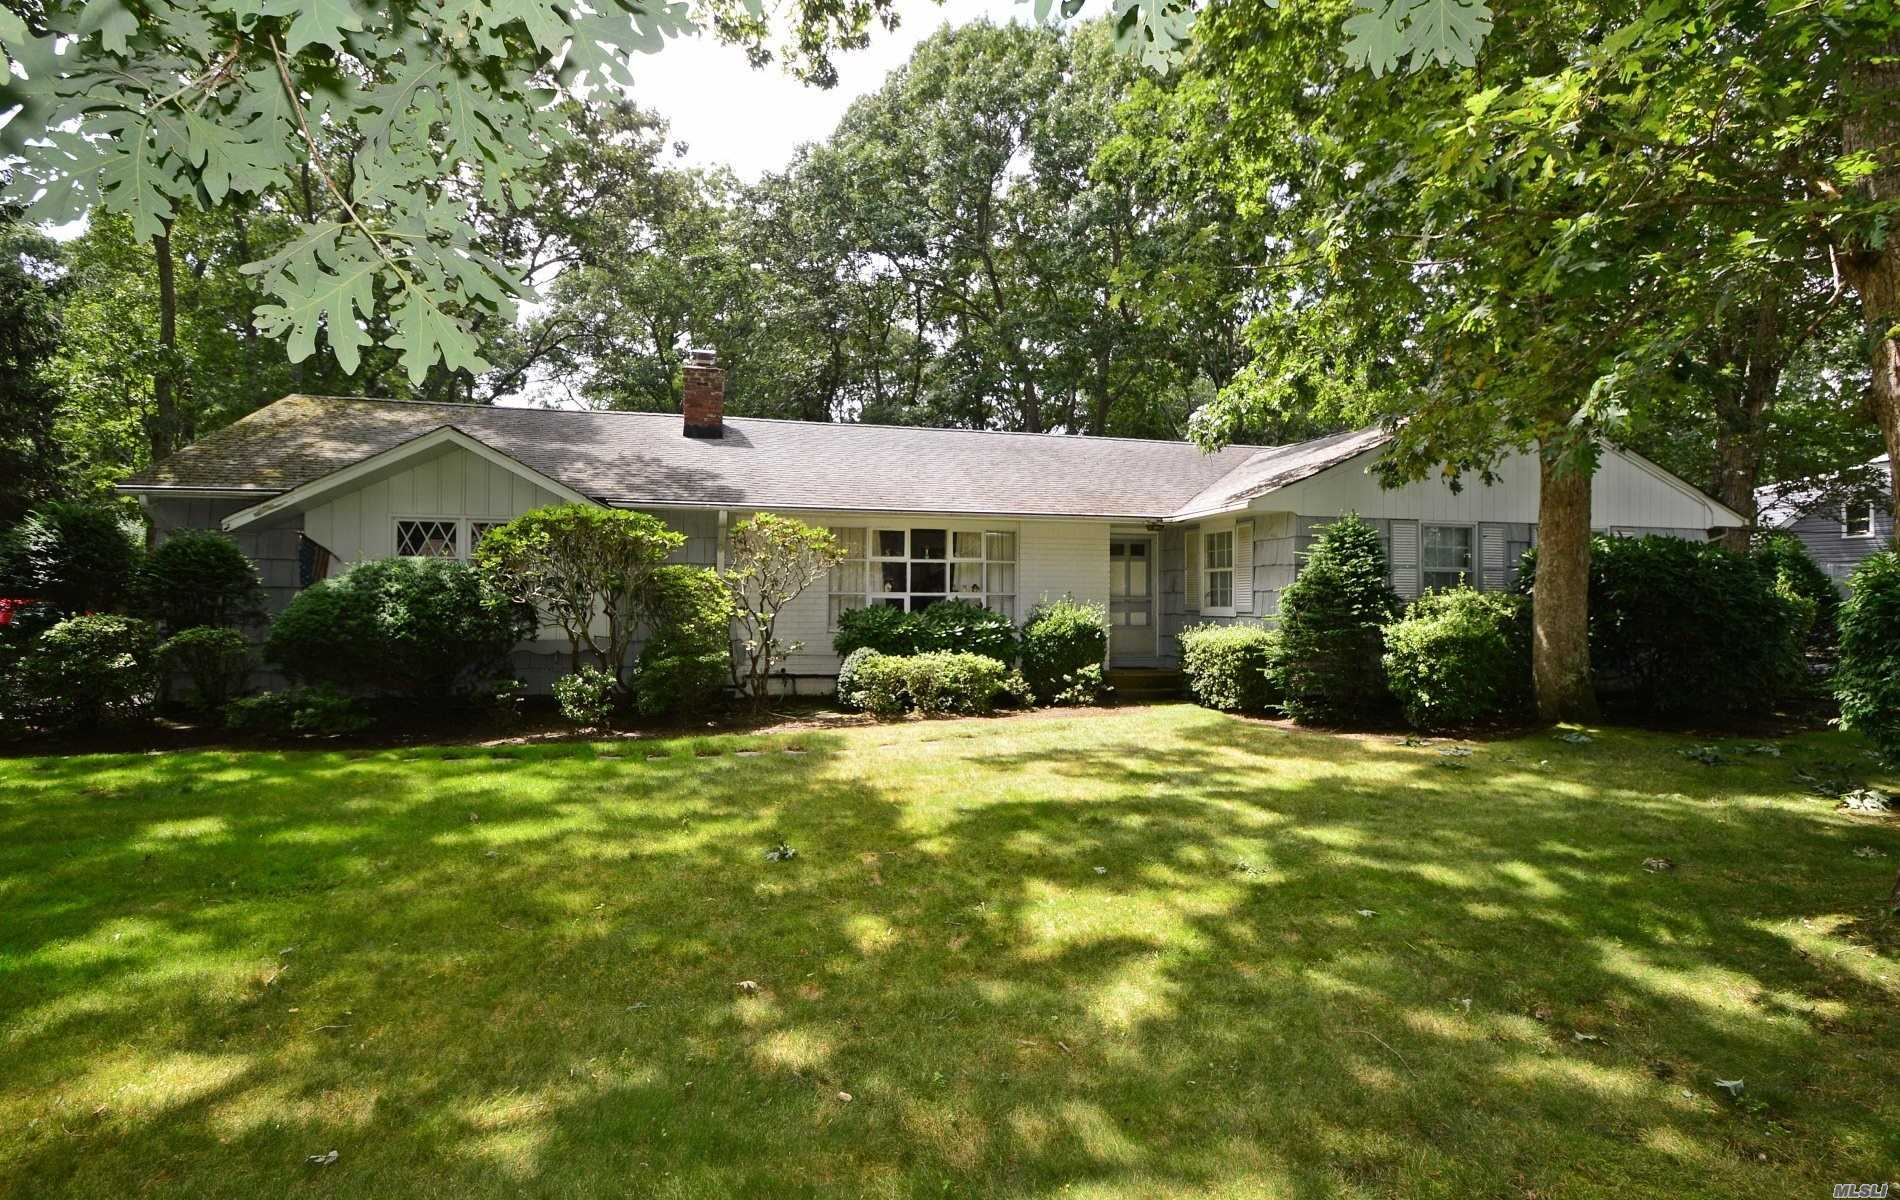 Looking To Make Something Your Very Own??? Look No Further...This Warm And Inviting Flowers Estate Wideline Ranch In Great River Is In Original Condition But Has Great Bones. Master Bedroom W/Private Bath And 2 Sets Of Double Closets. Hardwood Floors Beneath Carpeting. Fireplace In Living Room. Full Unfinished Basement. Just Shy 1/2 Acre. Sold In As Condition. A Must See!